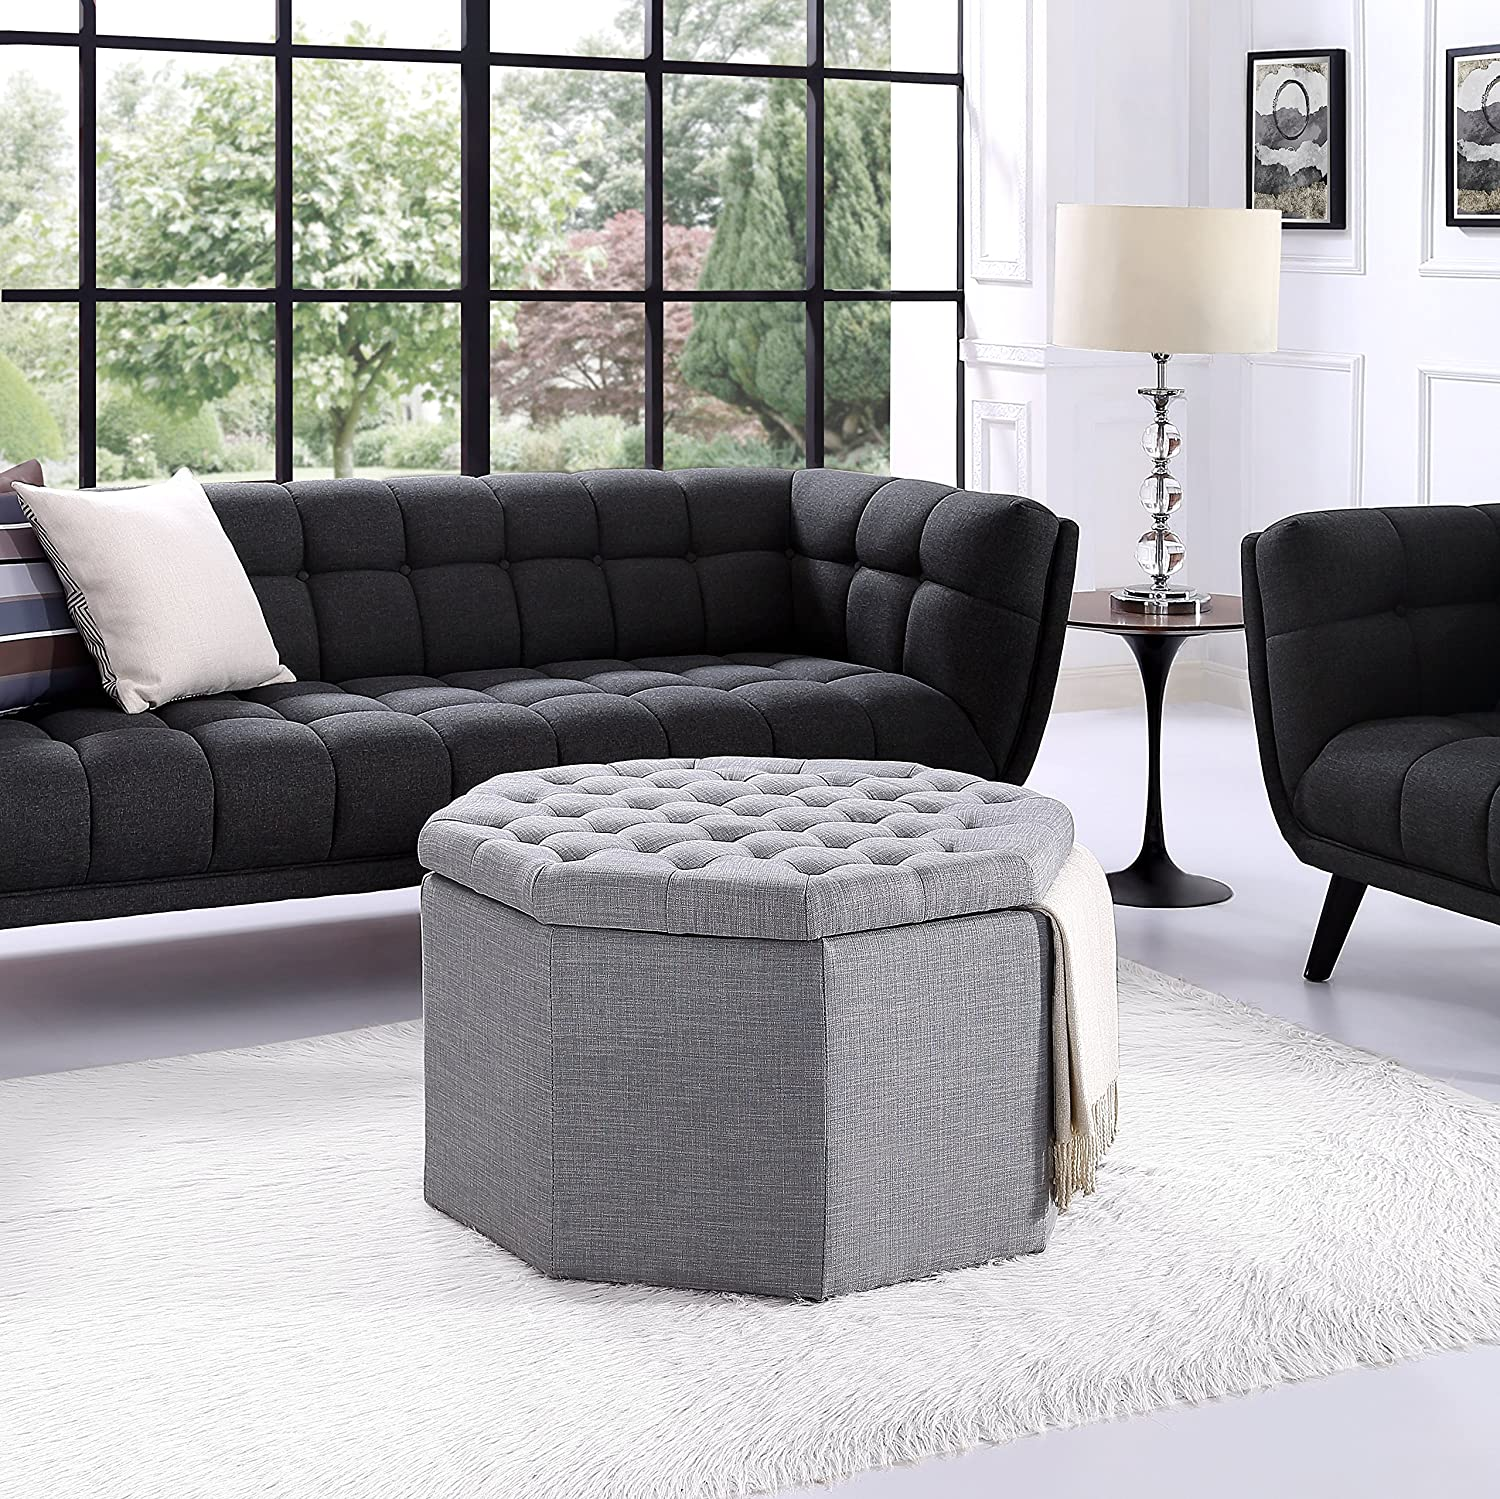 Amazon com inspired home silvia grey linen storage ottoman cocktail coffee table upholstered tufted modern octagon kitchen dining